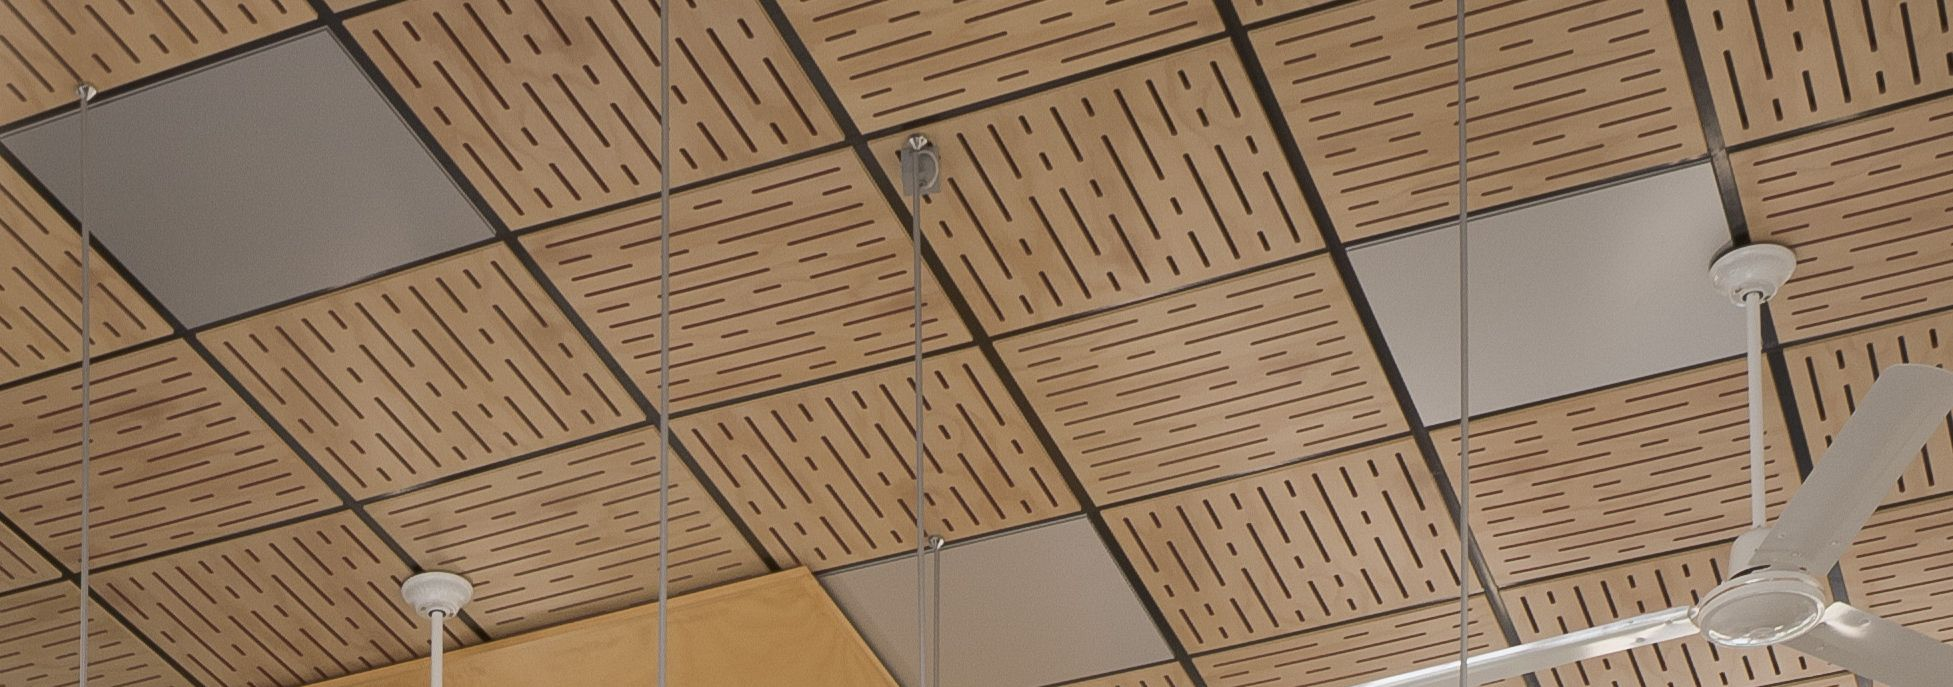 Modern drop ceiling tiles google search vbssunday school modern drop ceiling tiles google search dailygadgetfo Gallery